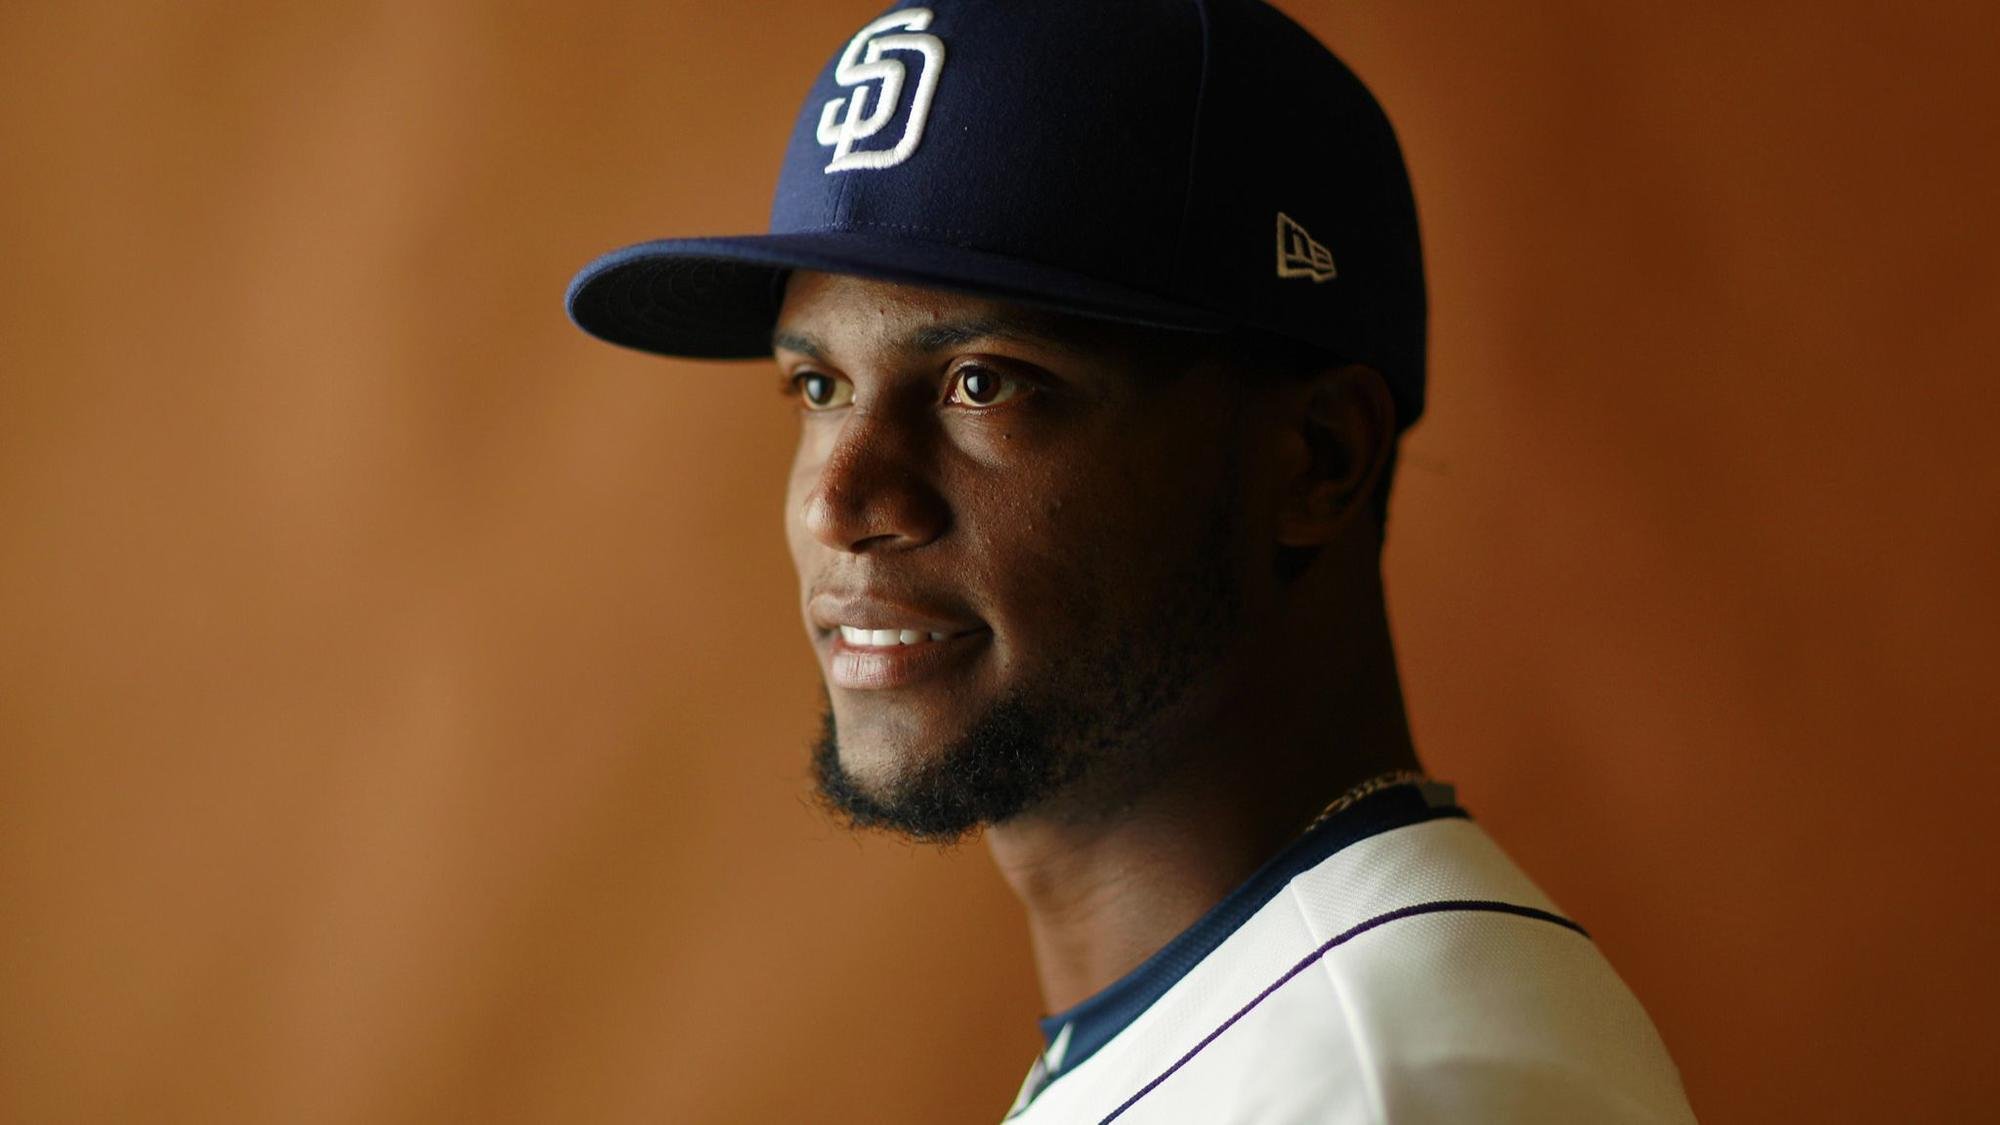 Sd-sp-padres-roster-review-miguel-diaz-20181210